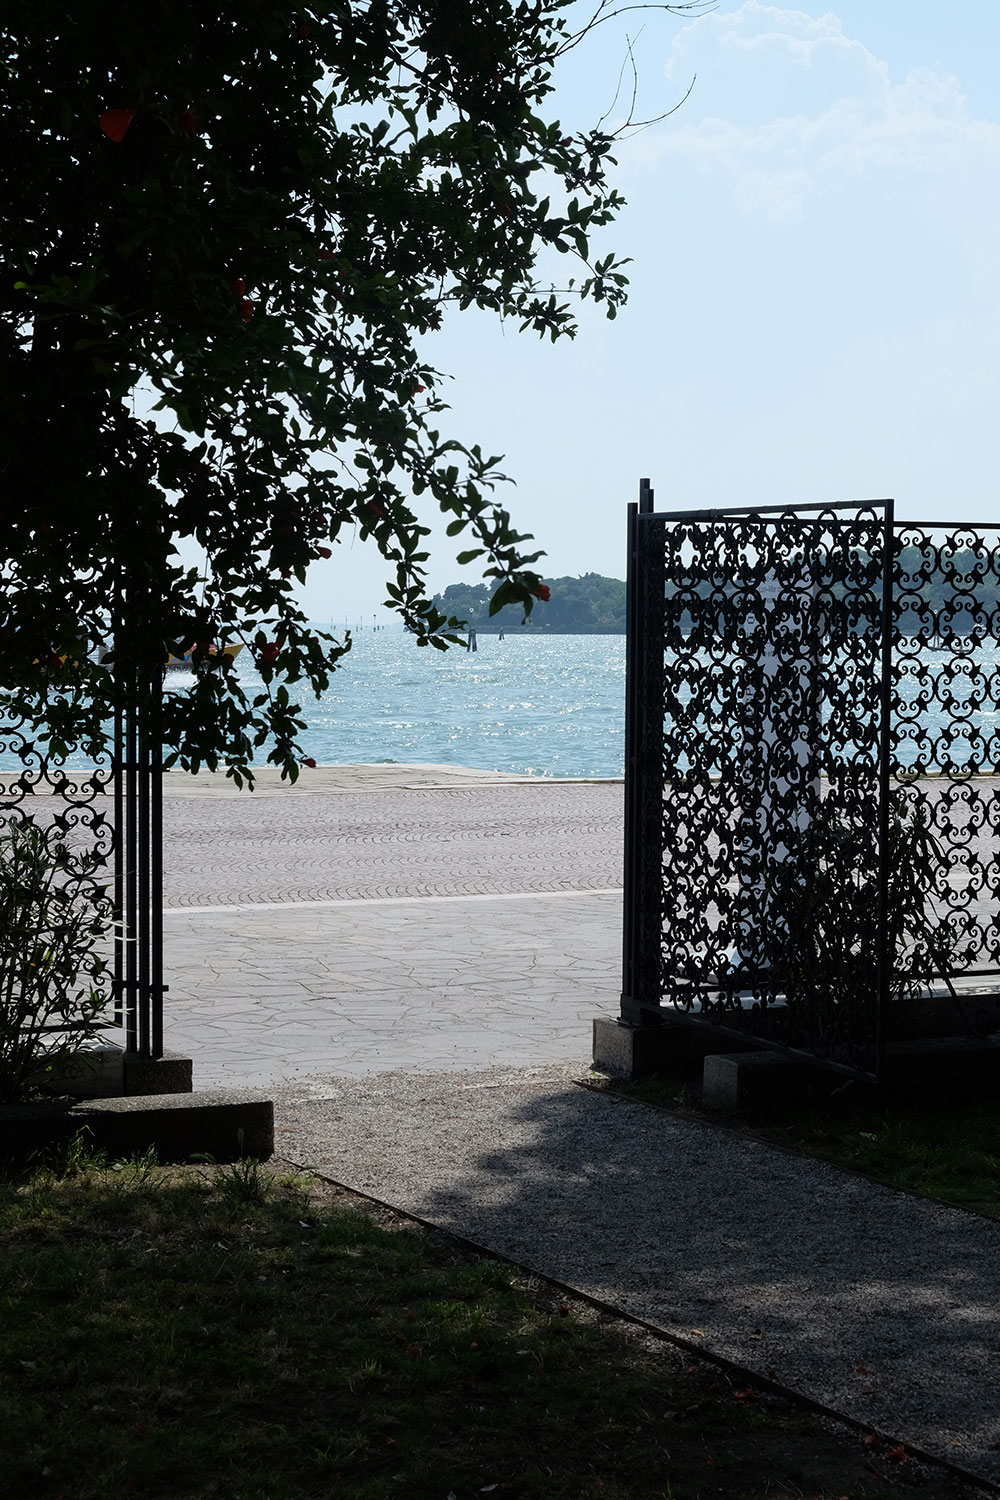 lagoon behind the Riva dei Sette Martiri, viewed through iron gates from the courtyard of the Palazzina Canonica